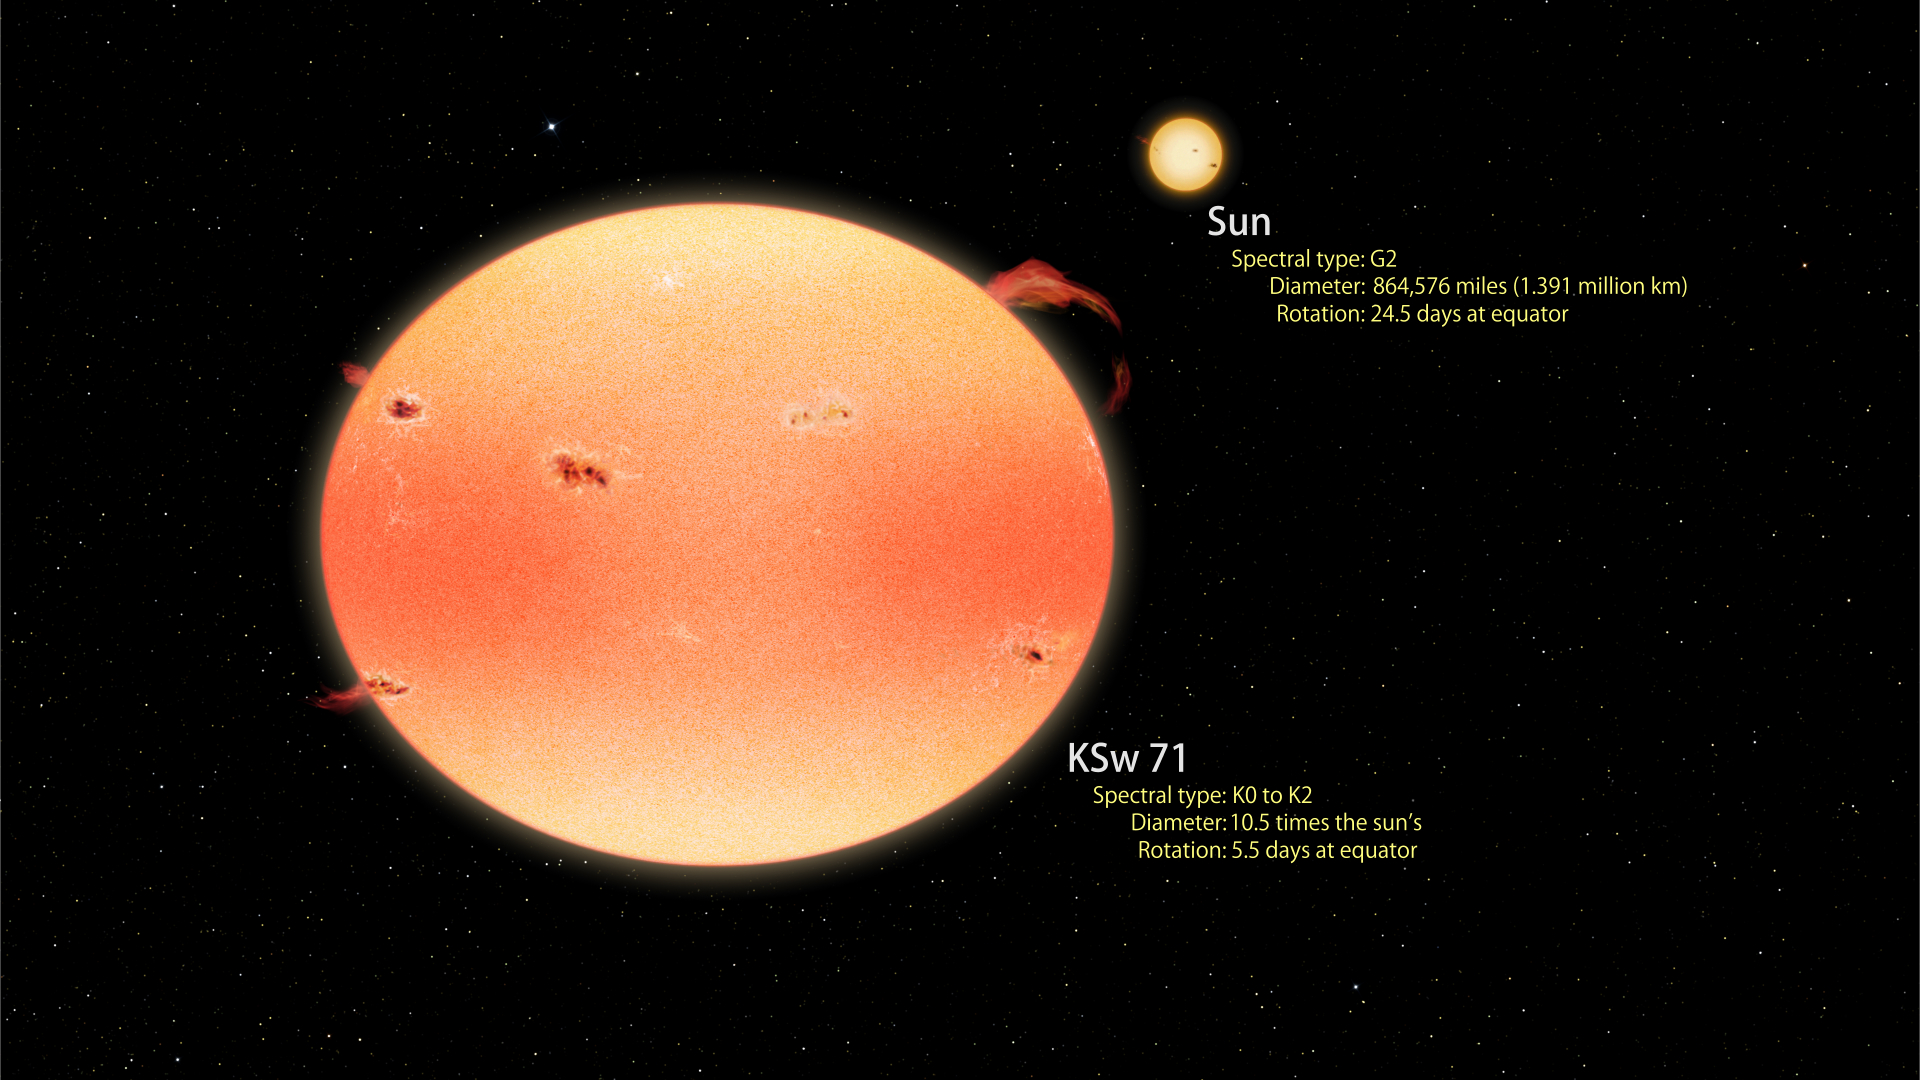 Worksheet The Sun And The Stars nasa missions harvest pumpkin stars passel artist concept of ksw 71 and our sun this artists illustrates how the